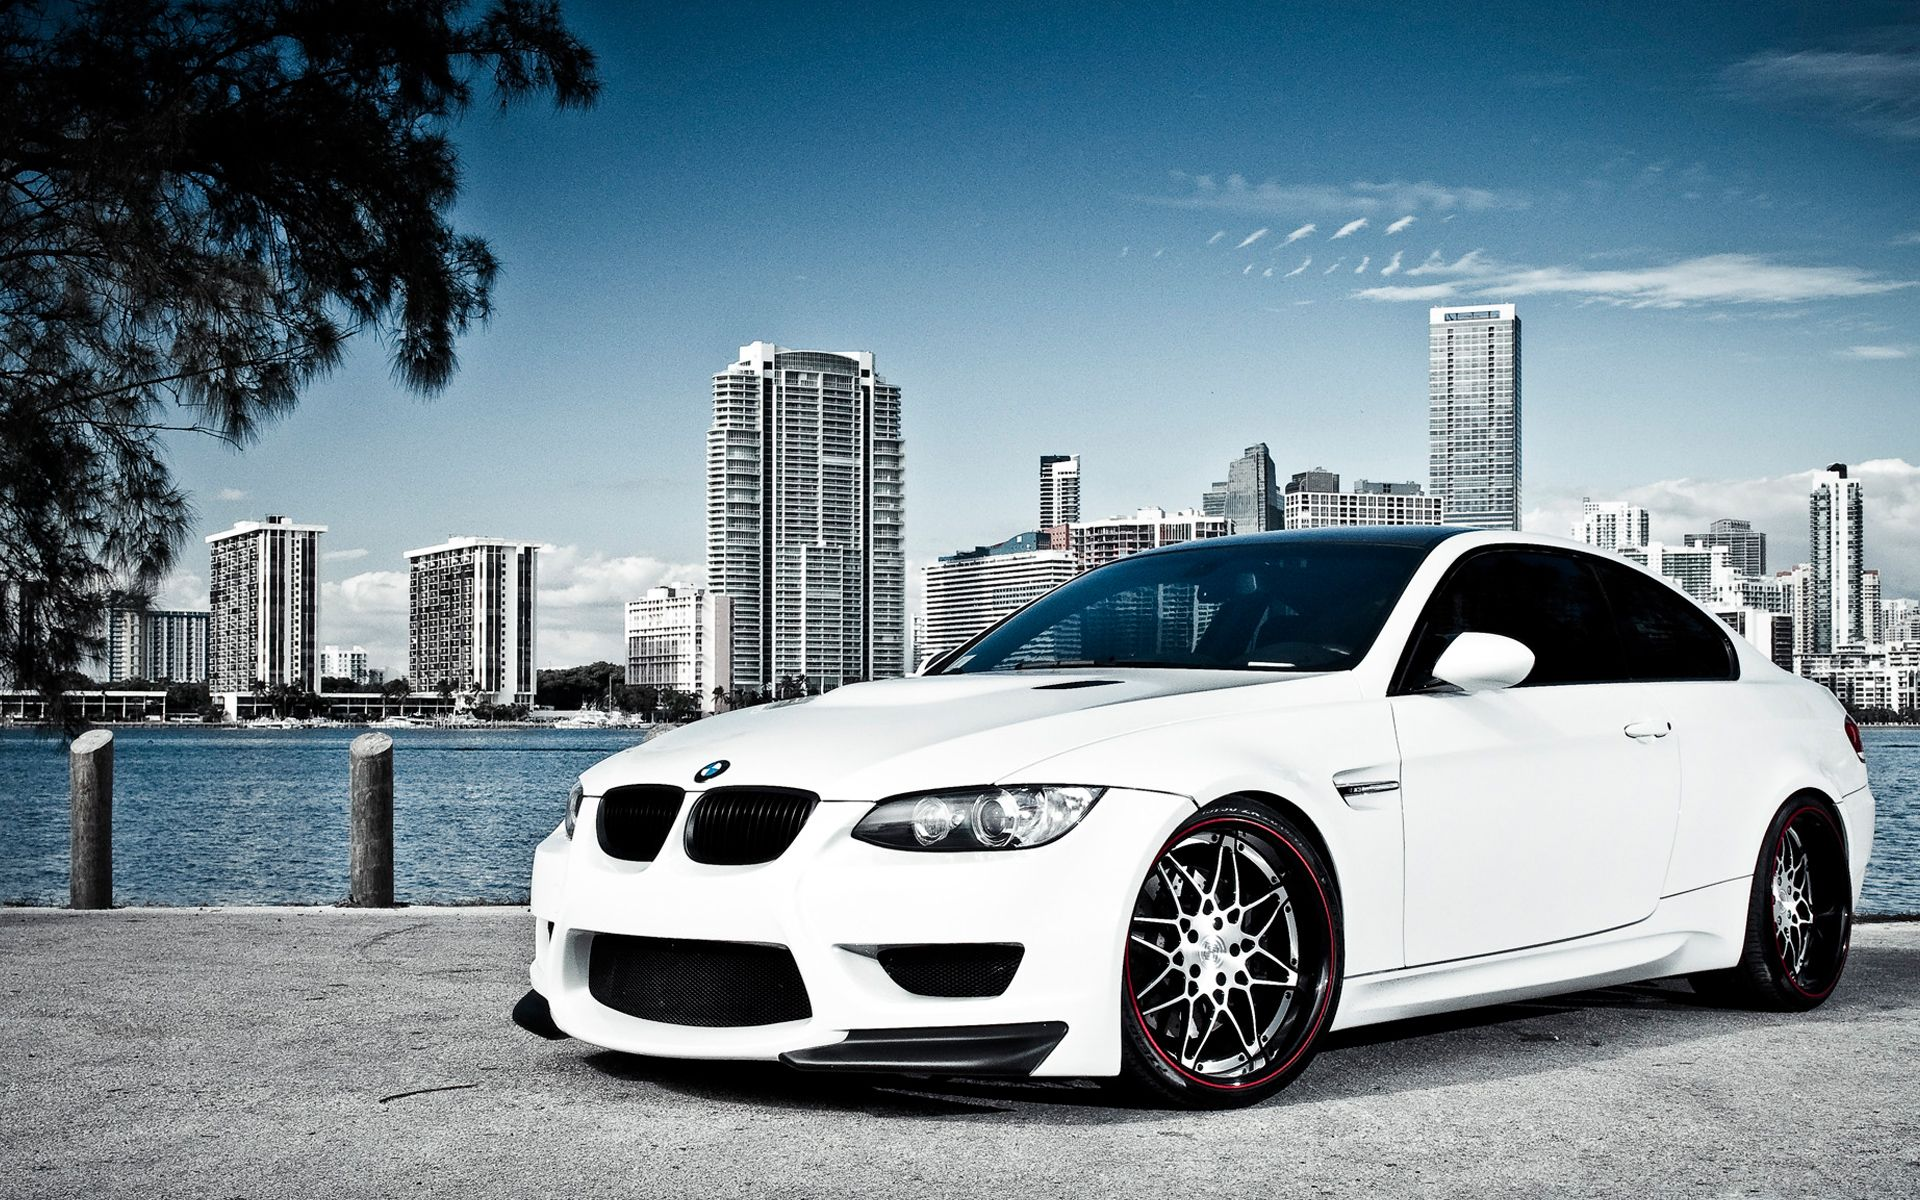 new car bmw 320i wallpaper - http://whatstrendingonline/new